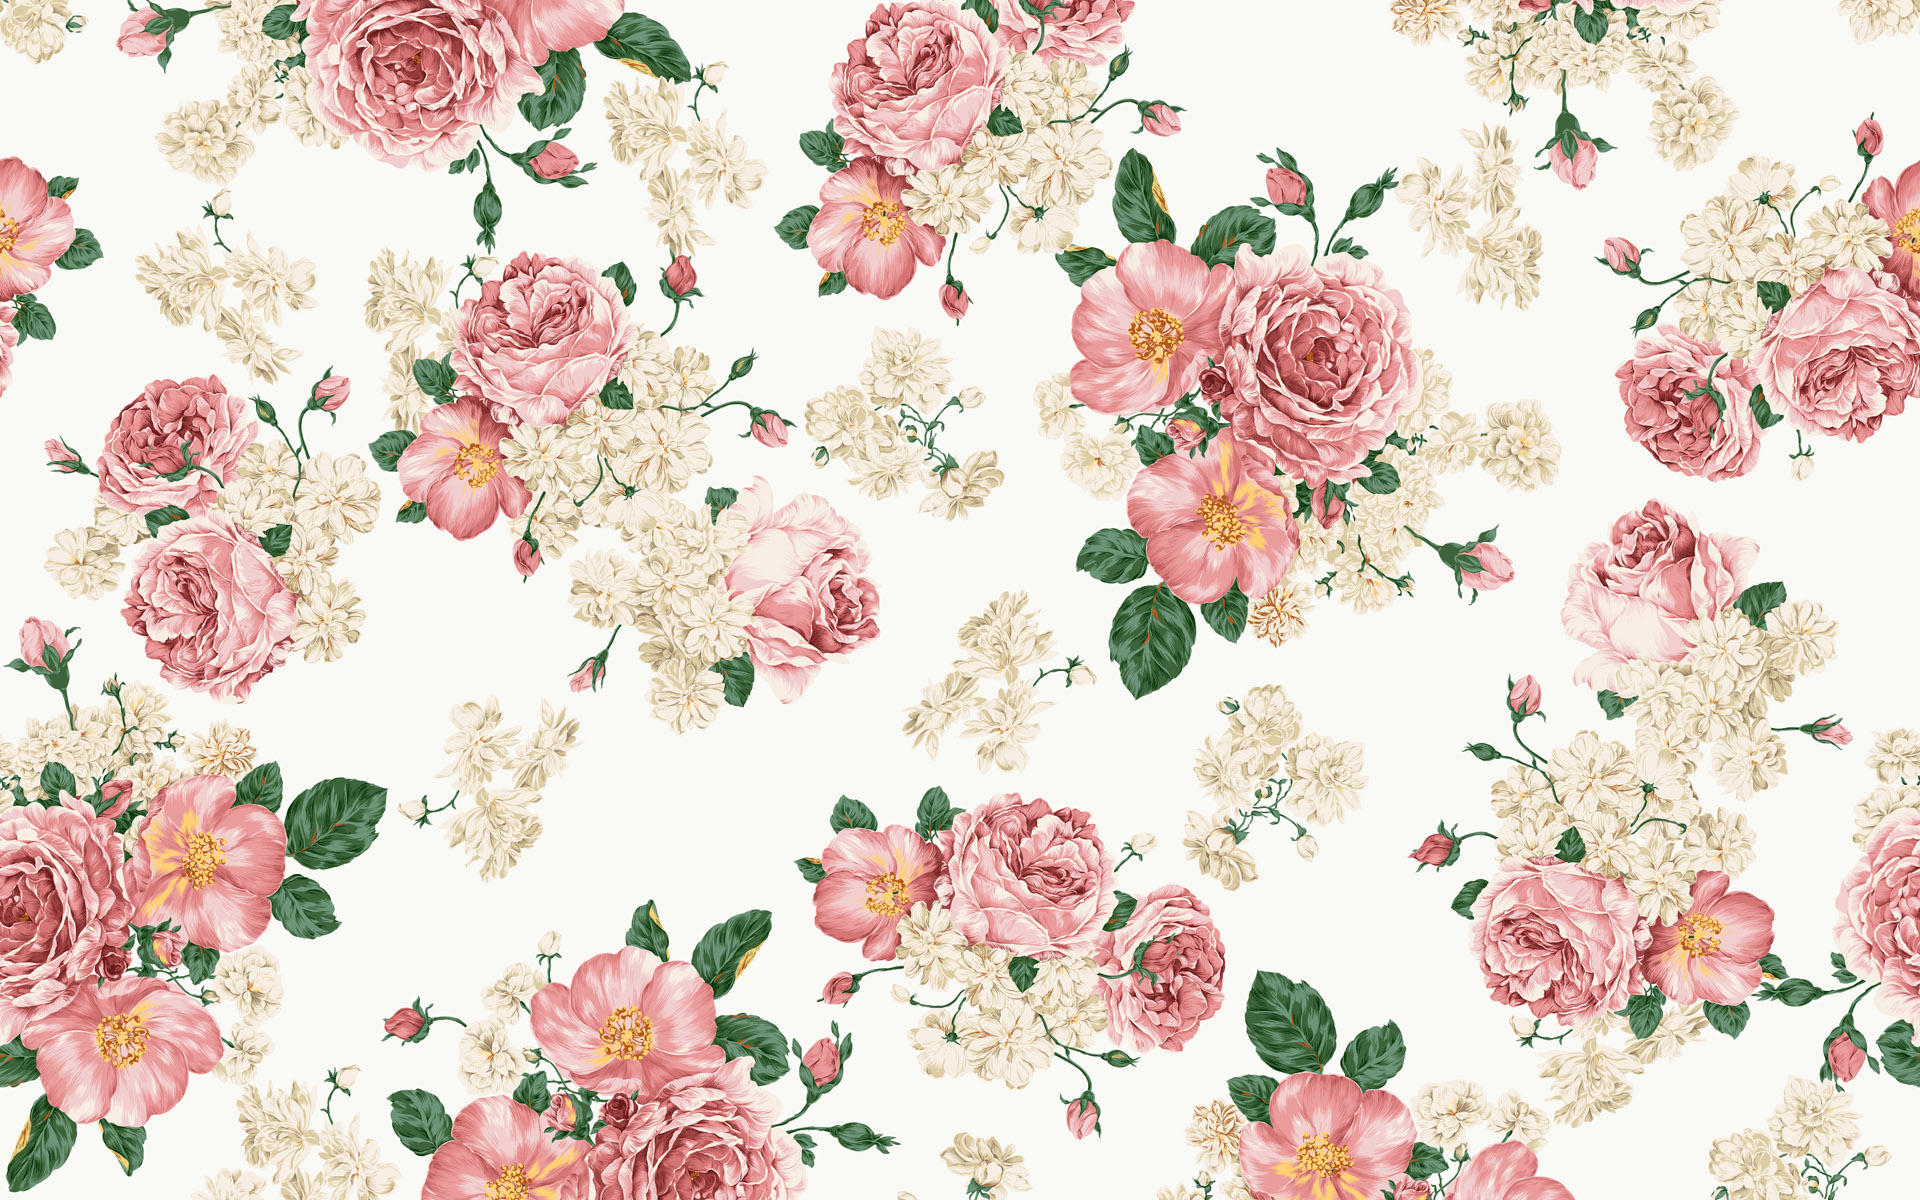 Tumblr Flower Wallpapers Group (71+)